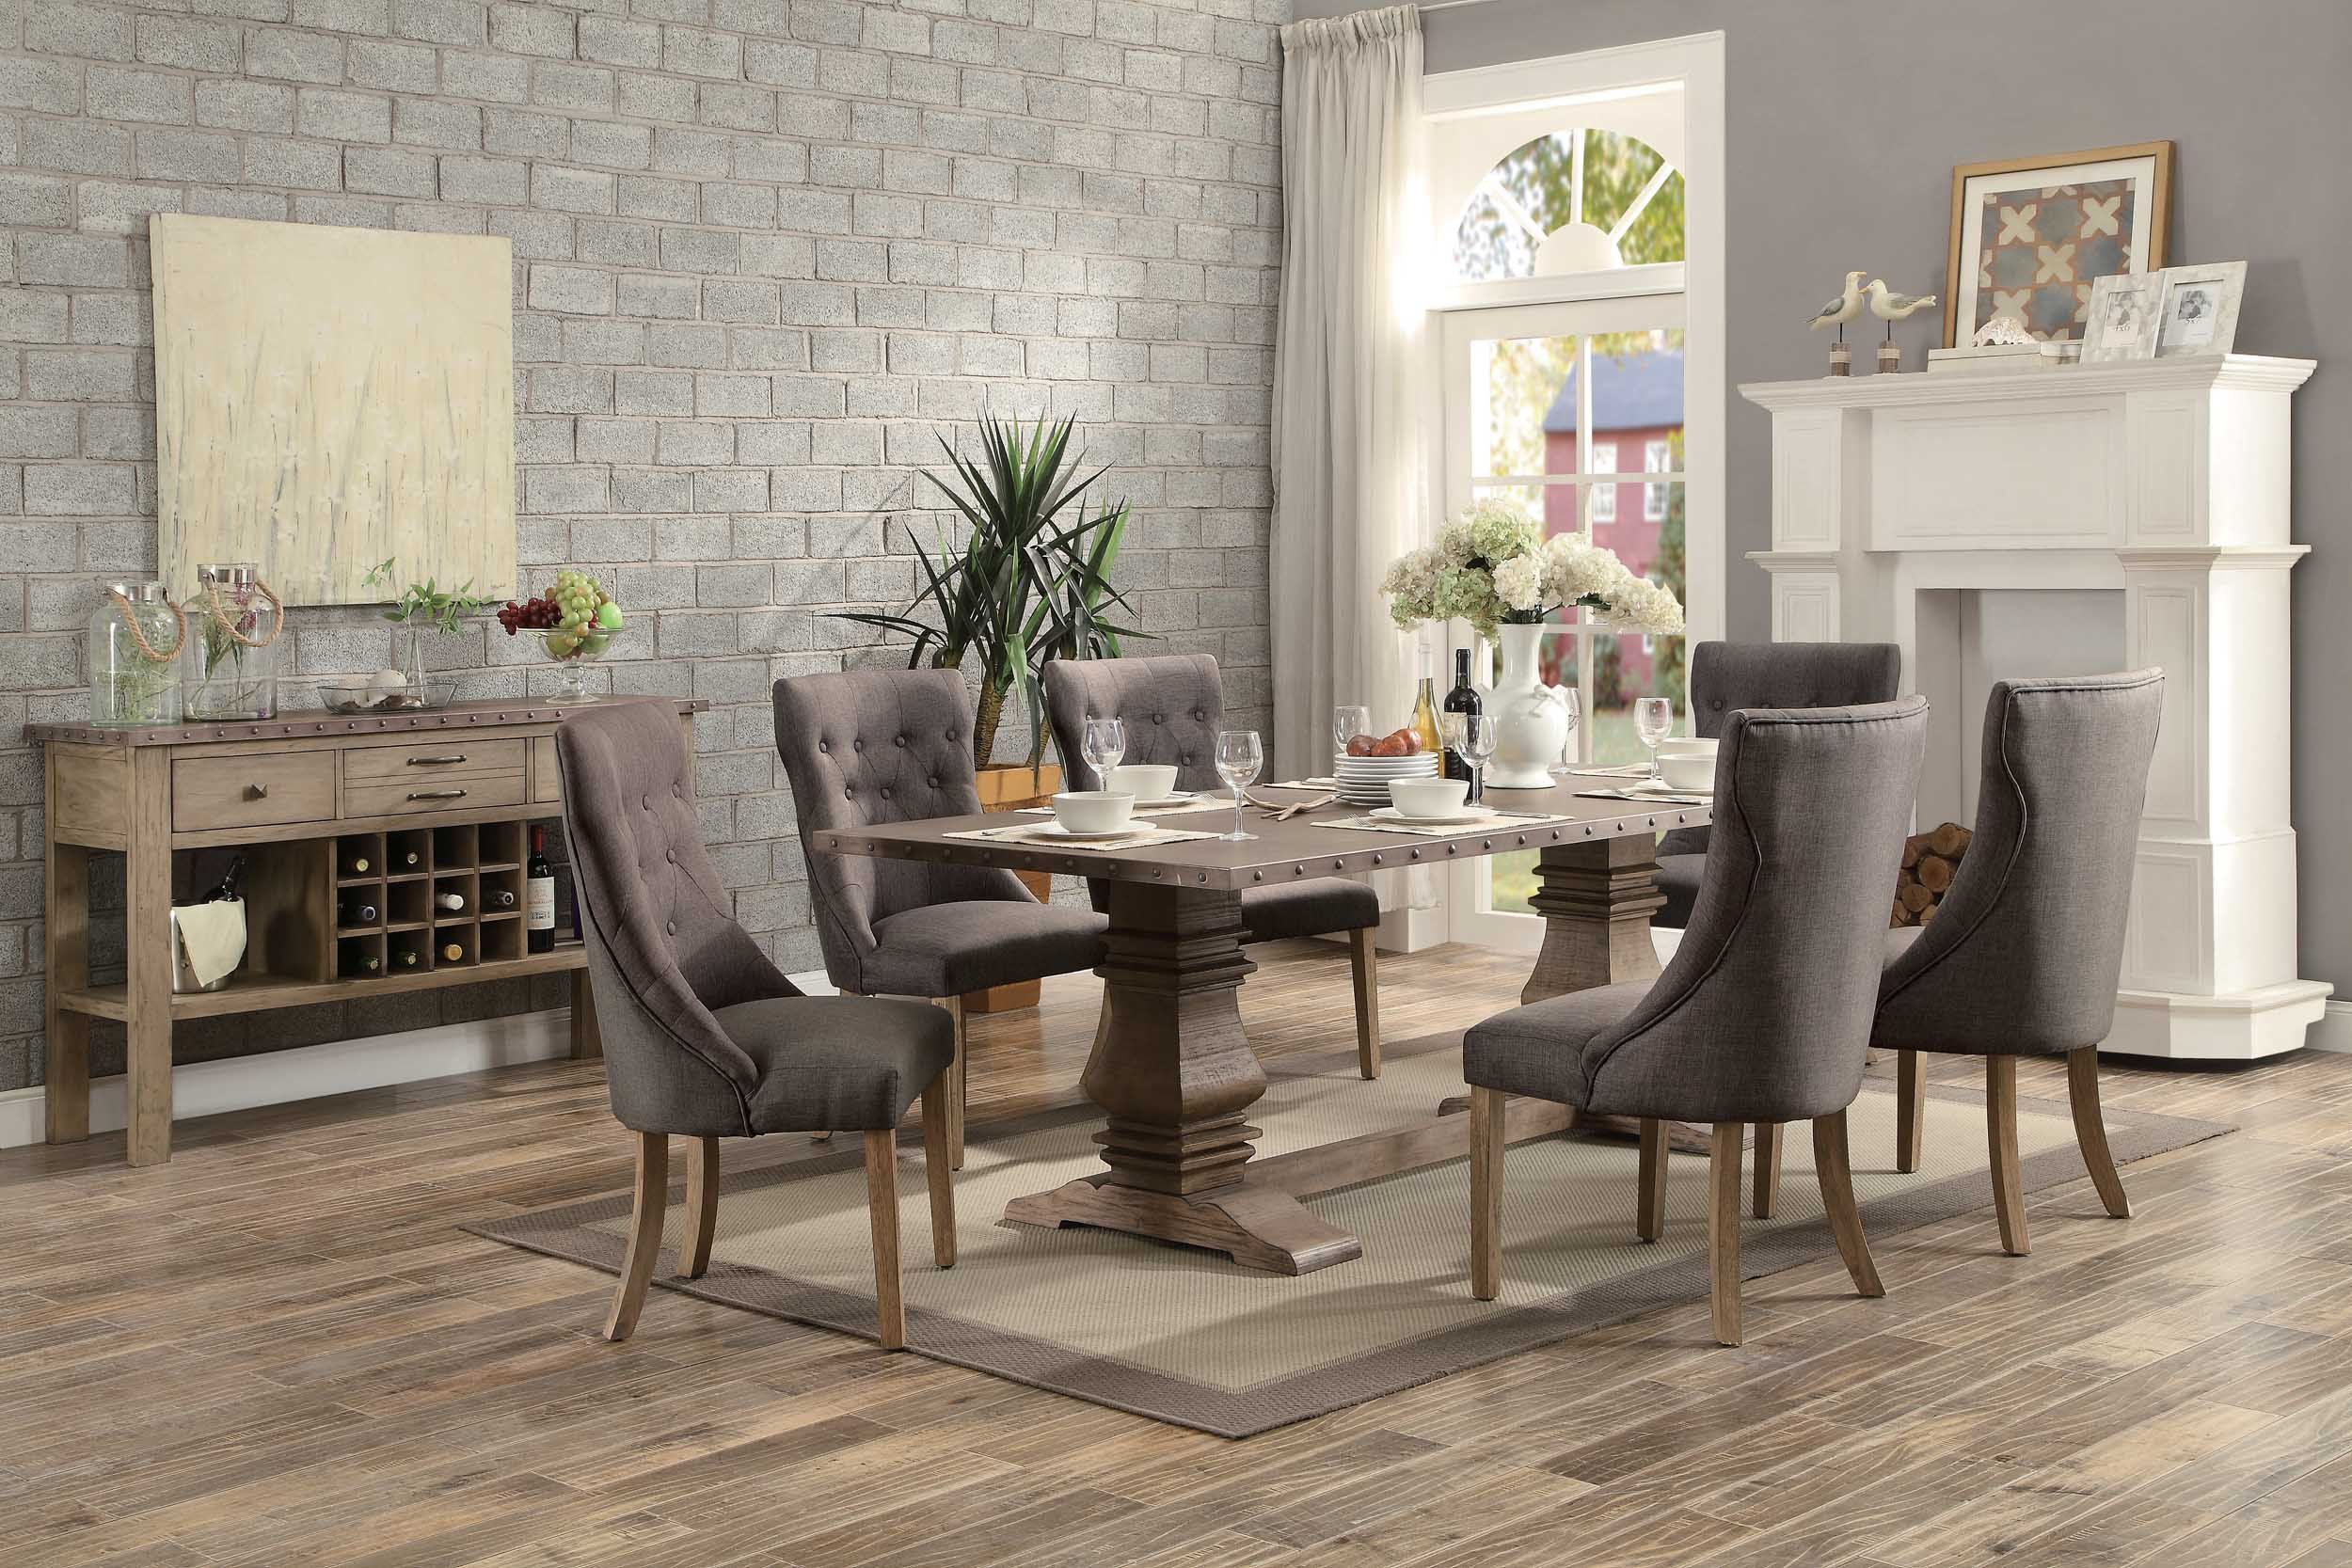 Homelegance Anna Claire 7-Piece Dining Set 84-inch Zinc Top Dining Table and 6 Button Tufted Wingback Chairs by Homelegance (Image #2)